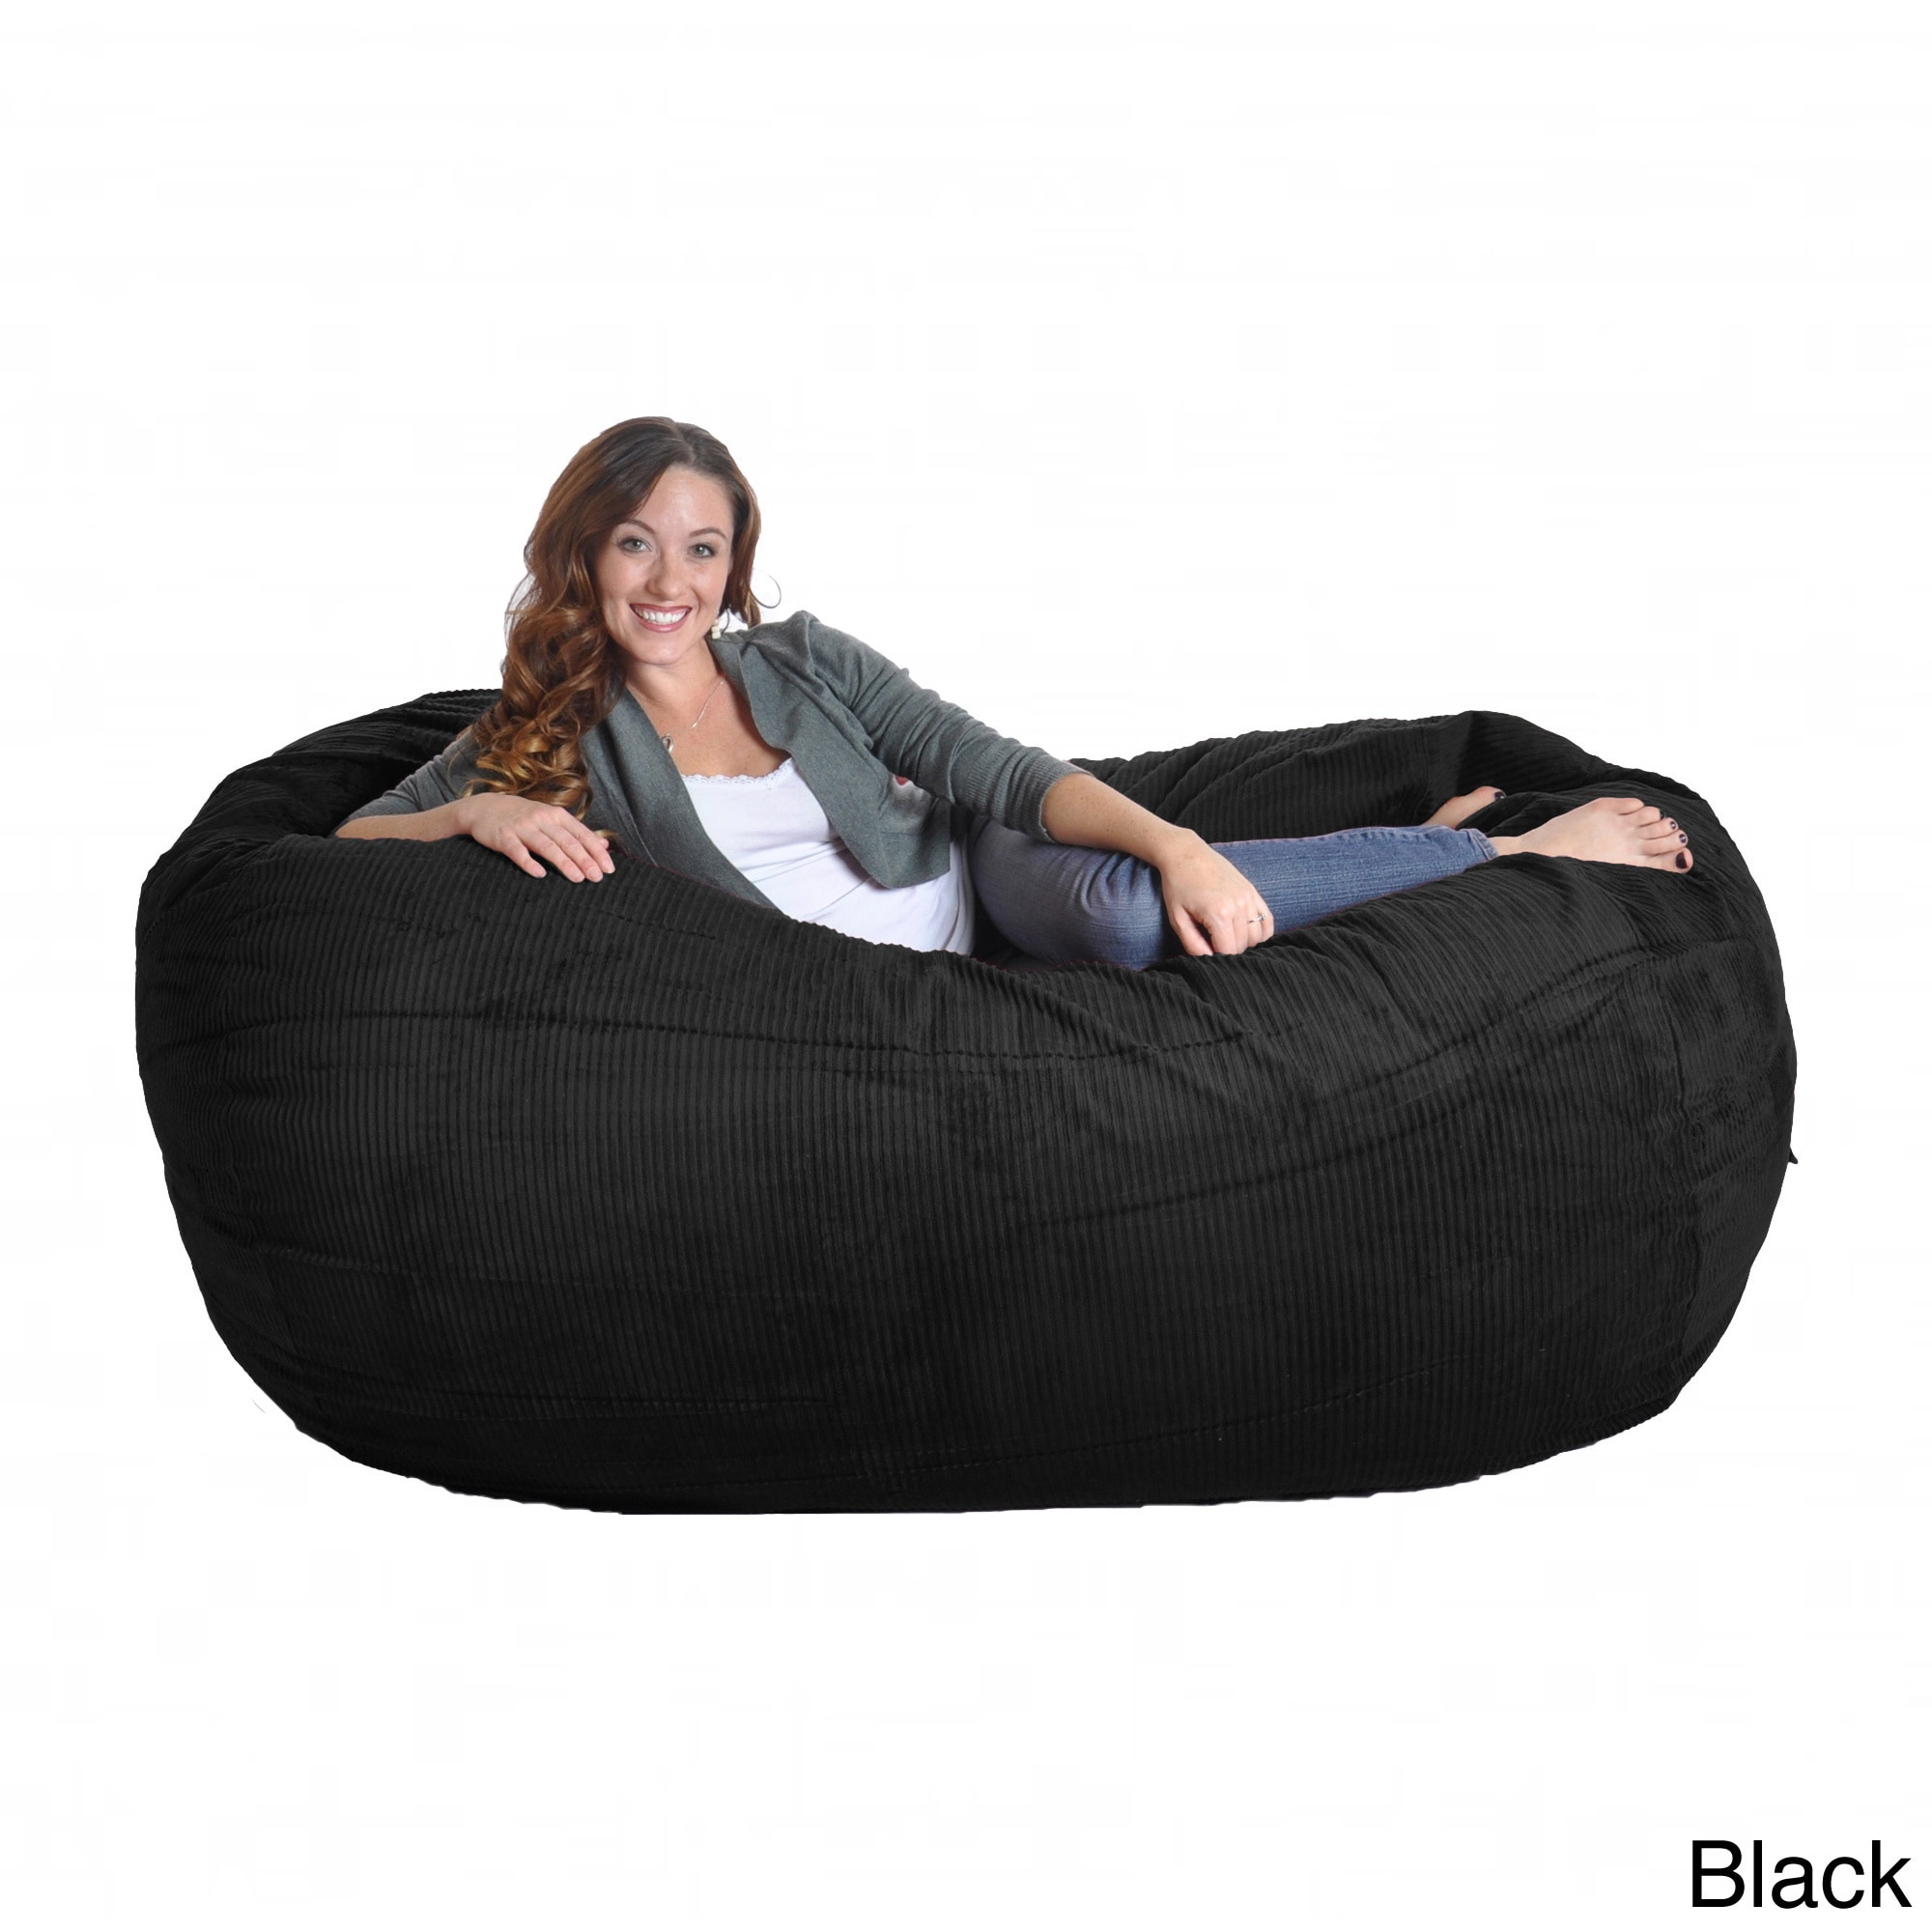 Marvelous Corduroy Oval Large Microfiber Suede And Foam Bean Bag Chair Gmtry Best Dining Table And Chair Ideas Images Gmtryco